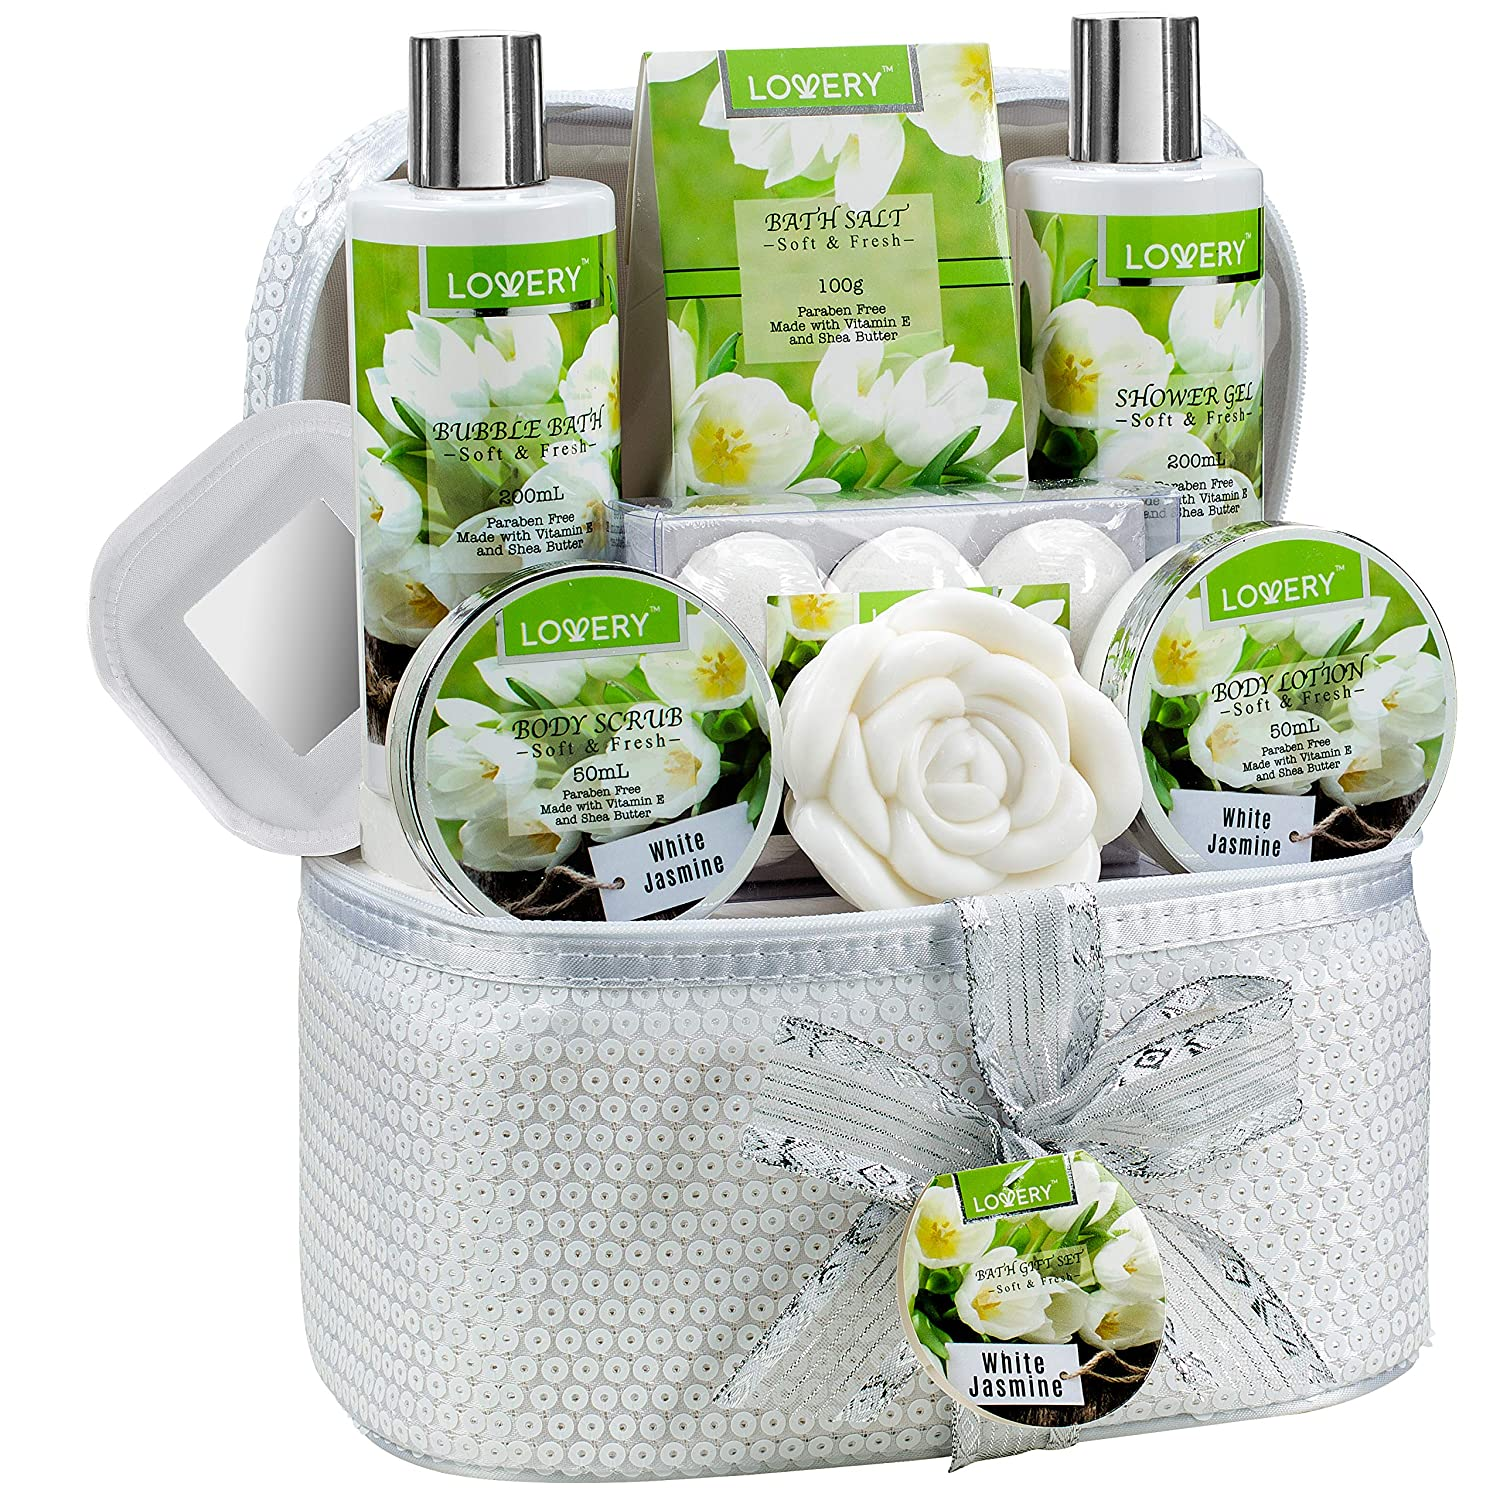 Bath and Body Gift Basket For Women & Men – 14 Piece Set in White Jasmine Scent - Home Spa Set with 6 Bath Bombs, Body Lotion, Rose Soaps, Hand Crafted White Sequined Cosmetics Bag and More